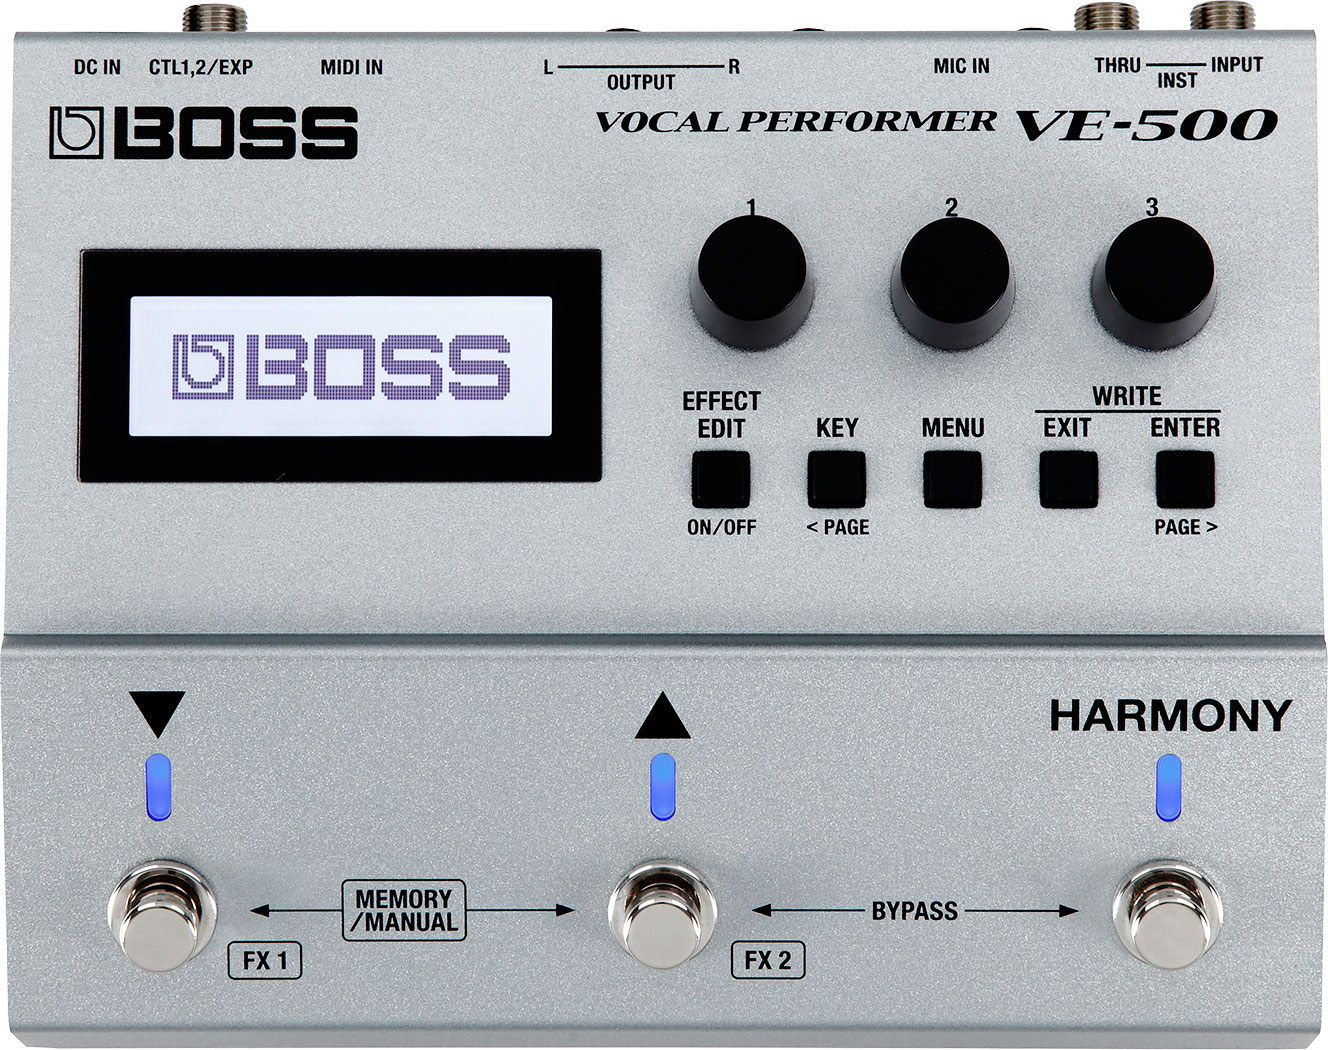 BOSS VE-500 Vocal Performer Effects